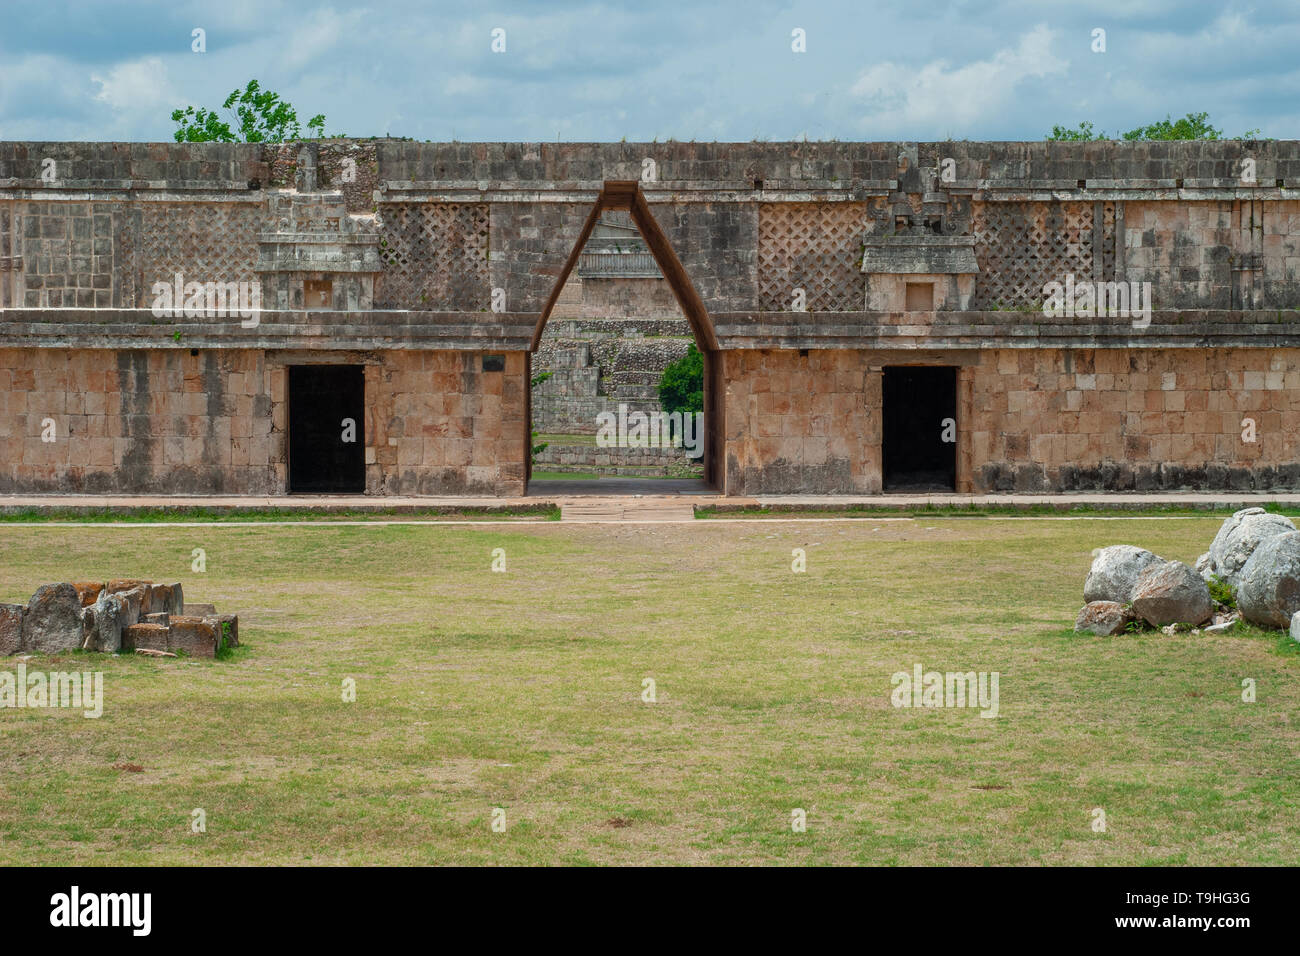 Architectural facade of a Mayan building, in the archaeological area of Ek Balam, on the Yucatan peninsula - Stock Image